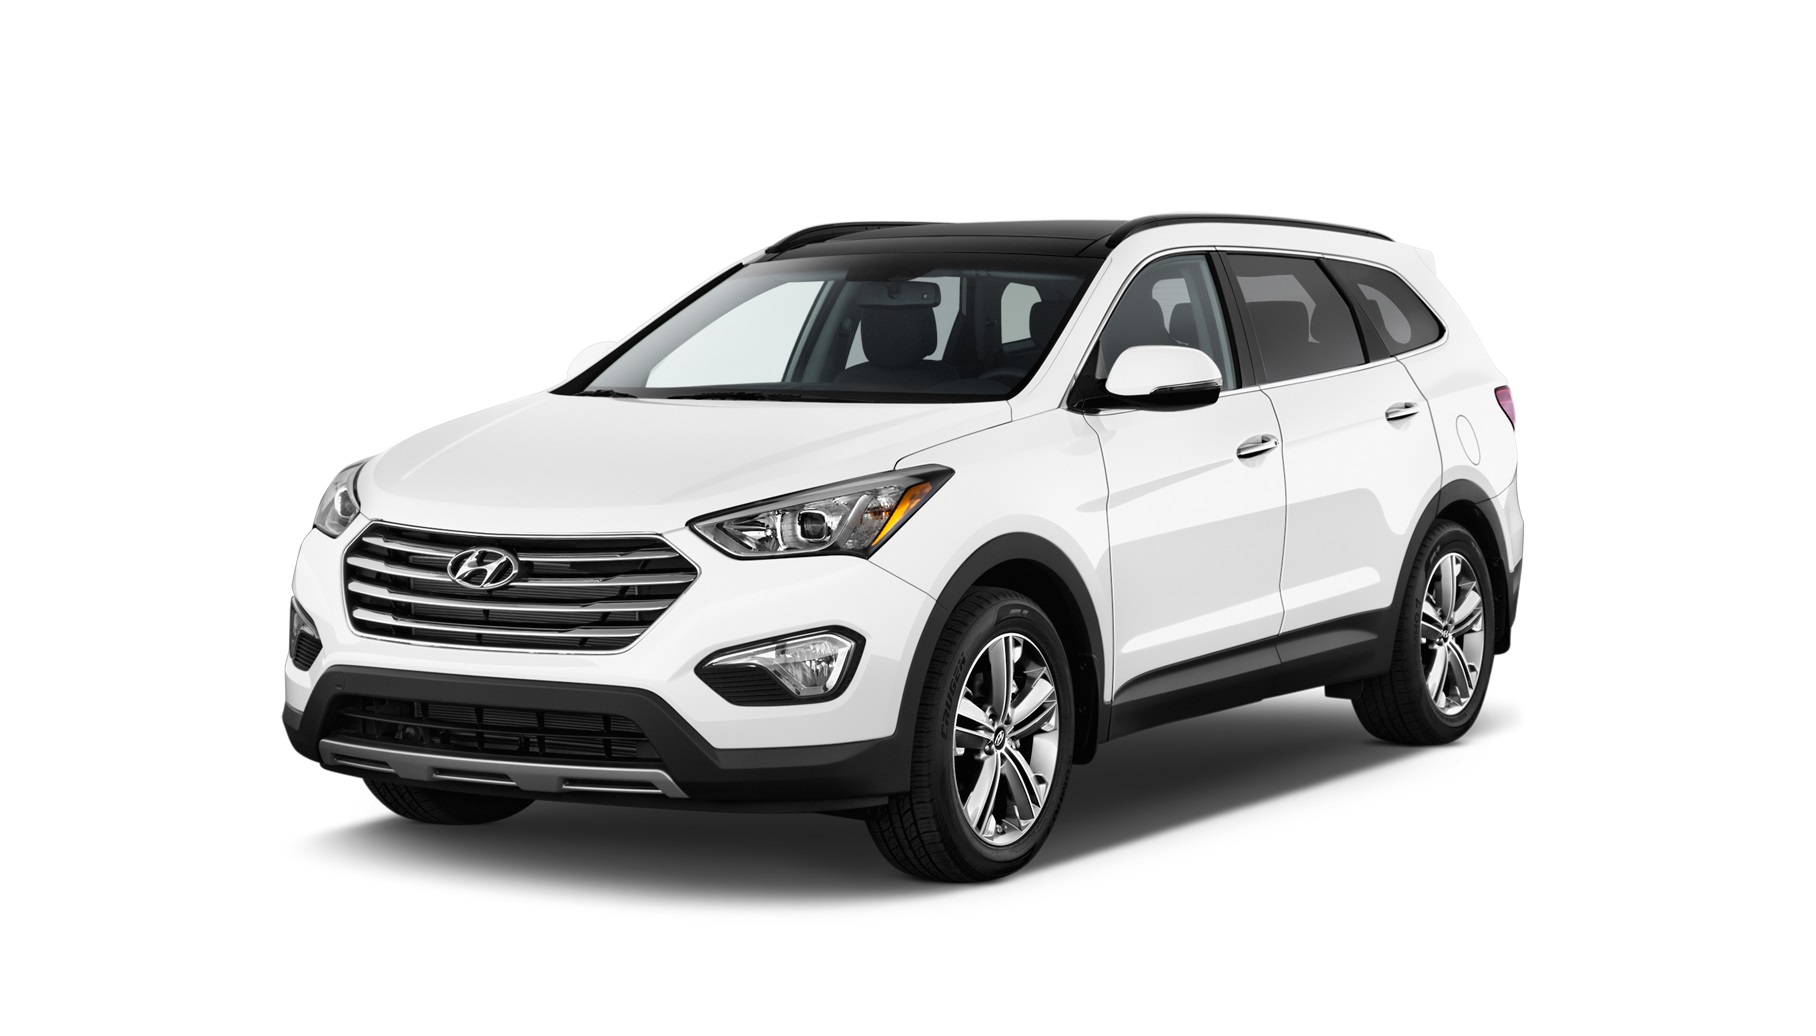 hyundai grand santa fe 2018 3 3l awd top in uae new car prices specs reviews photos. Black Bedroom Furniture Sets. Home Design Ideas